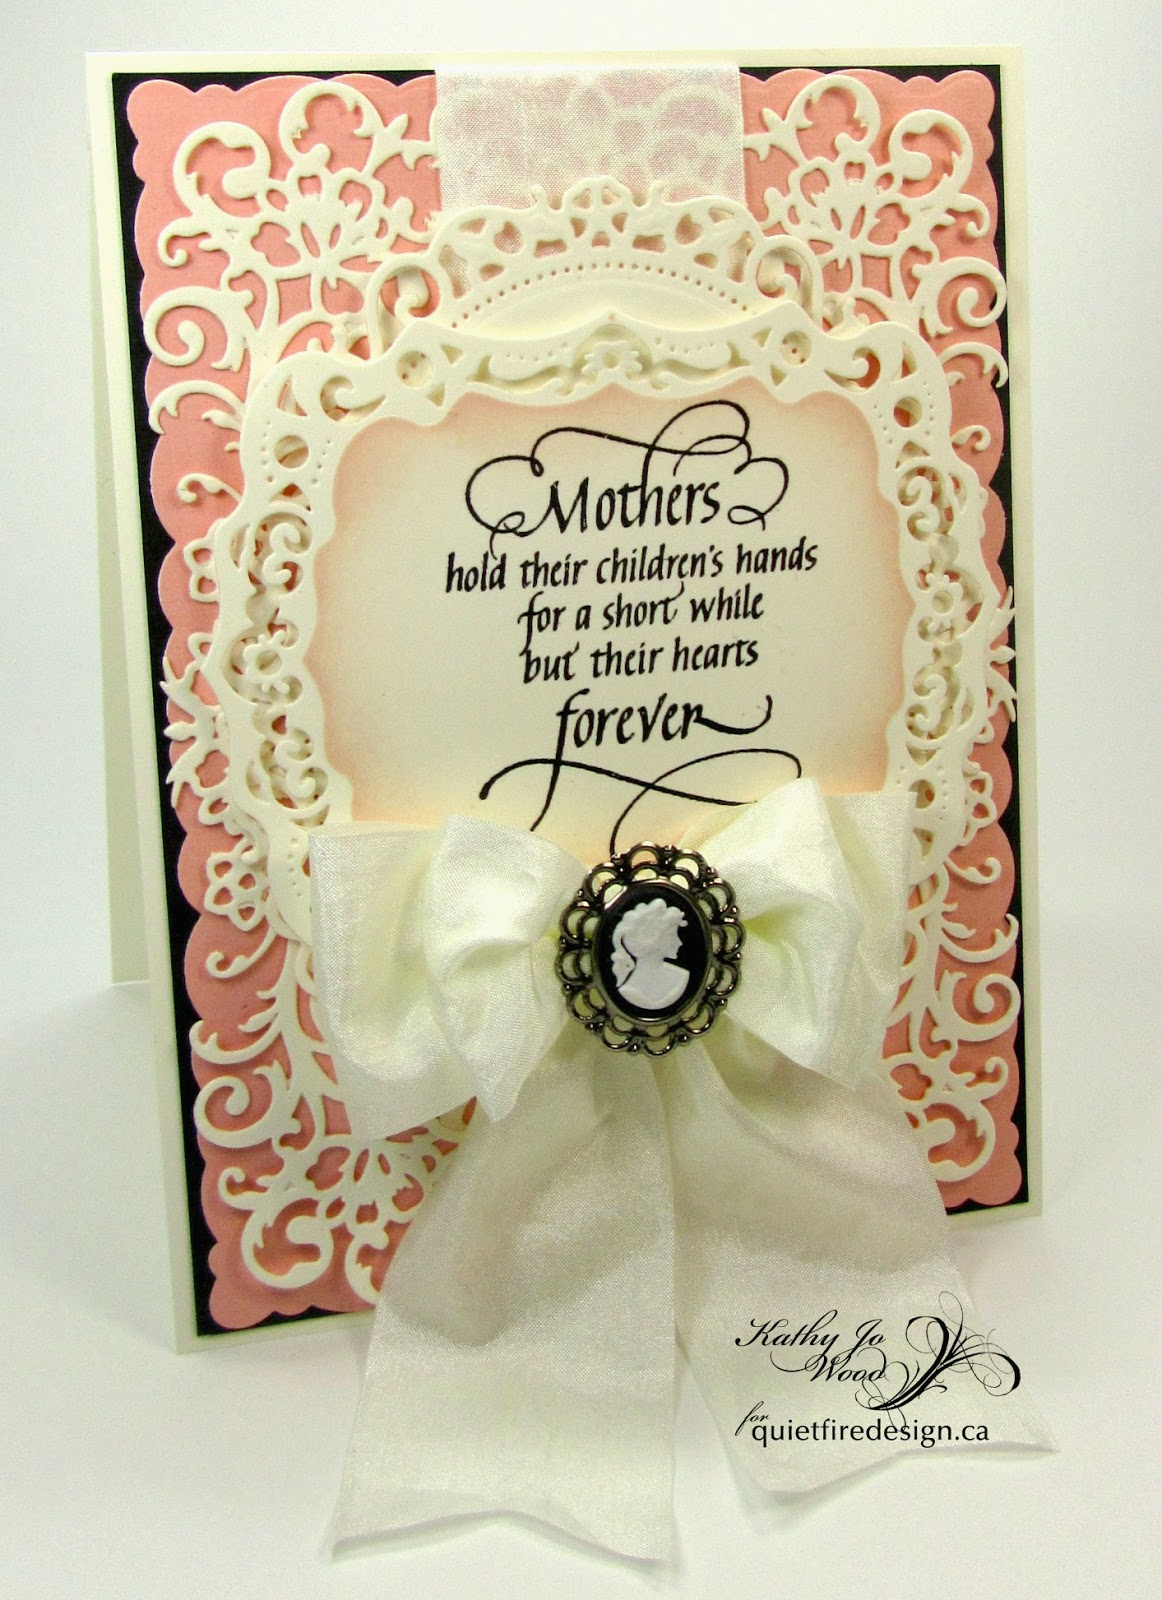 Quietfire Design, Mother's Day, card, mothers hold childrens hands, spellbinders, distress ink, labels 39, floral ovals, devine floral, romantic rose